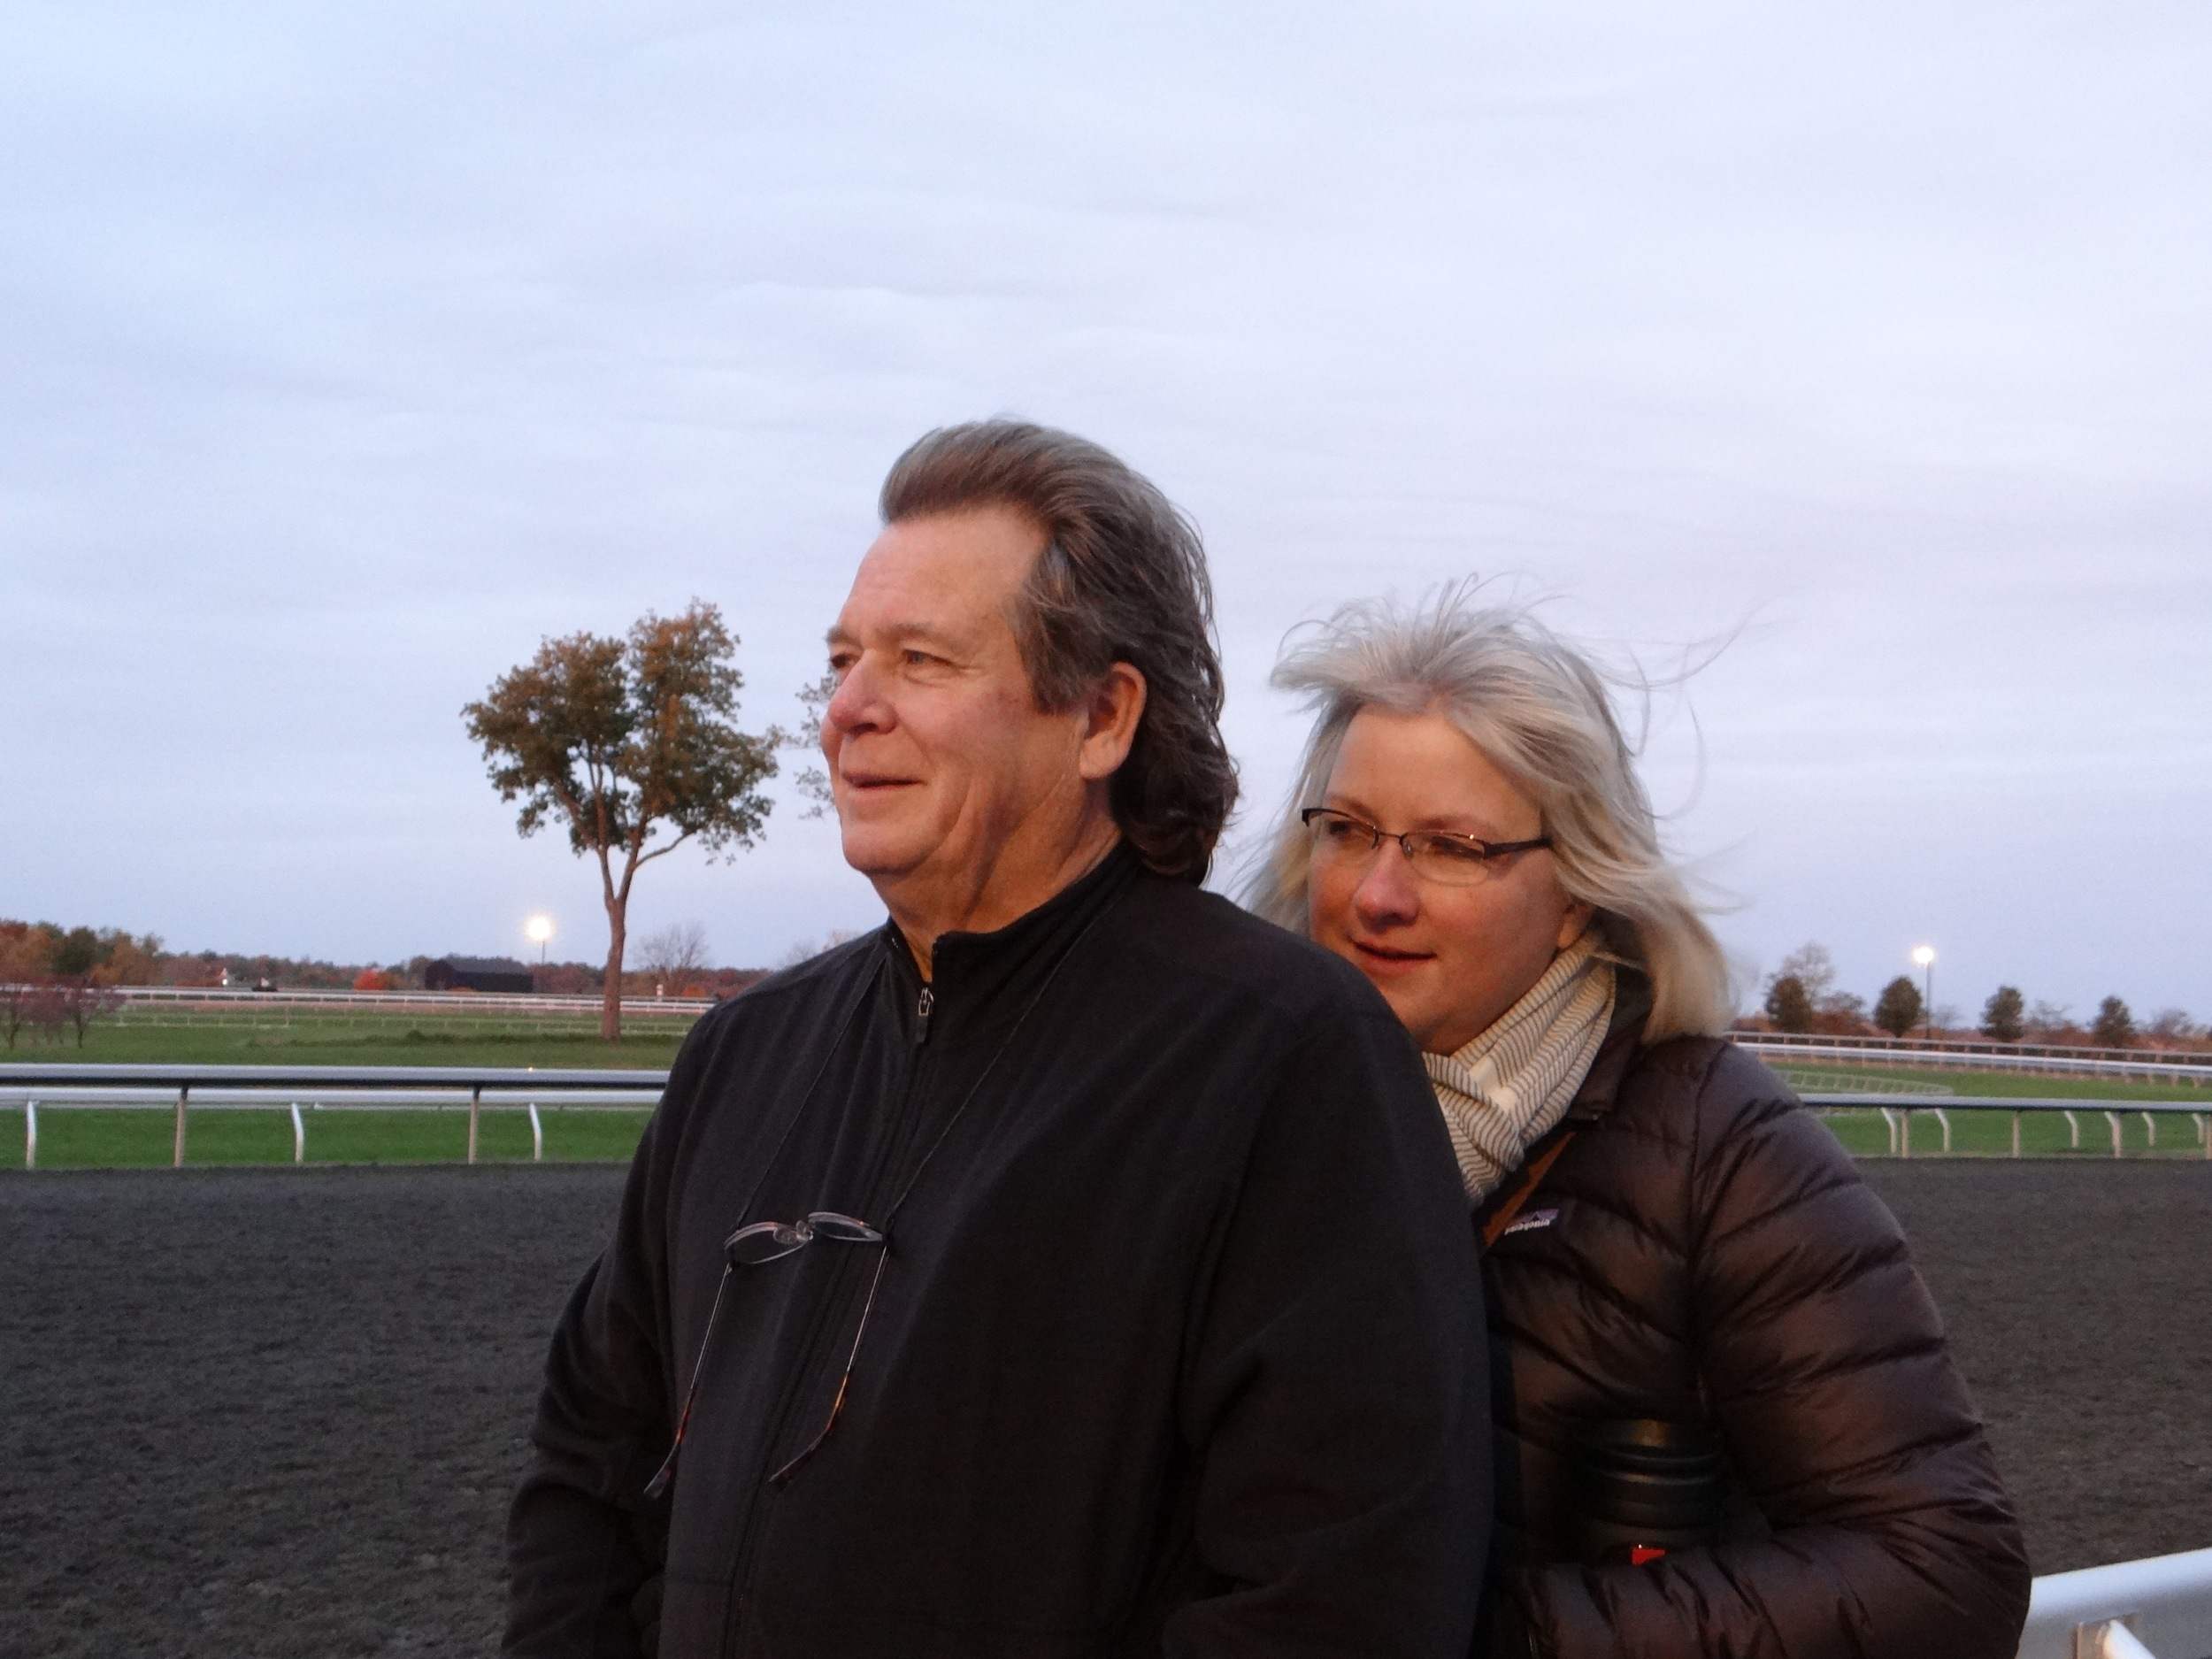 Steve & Tammi - Lexington.jpg